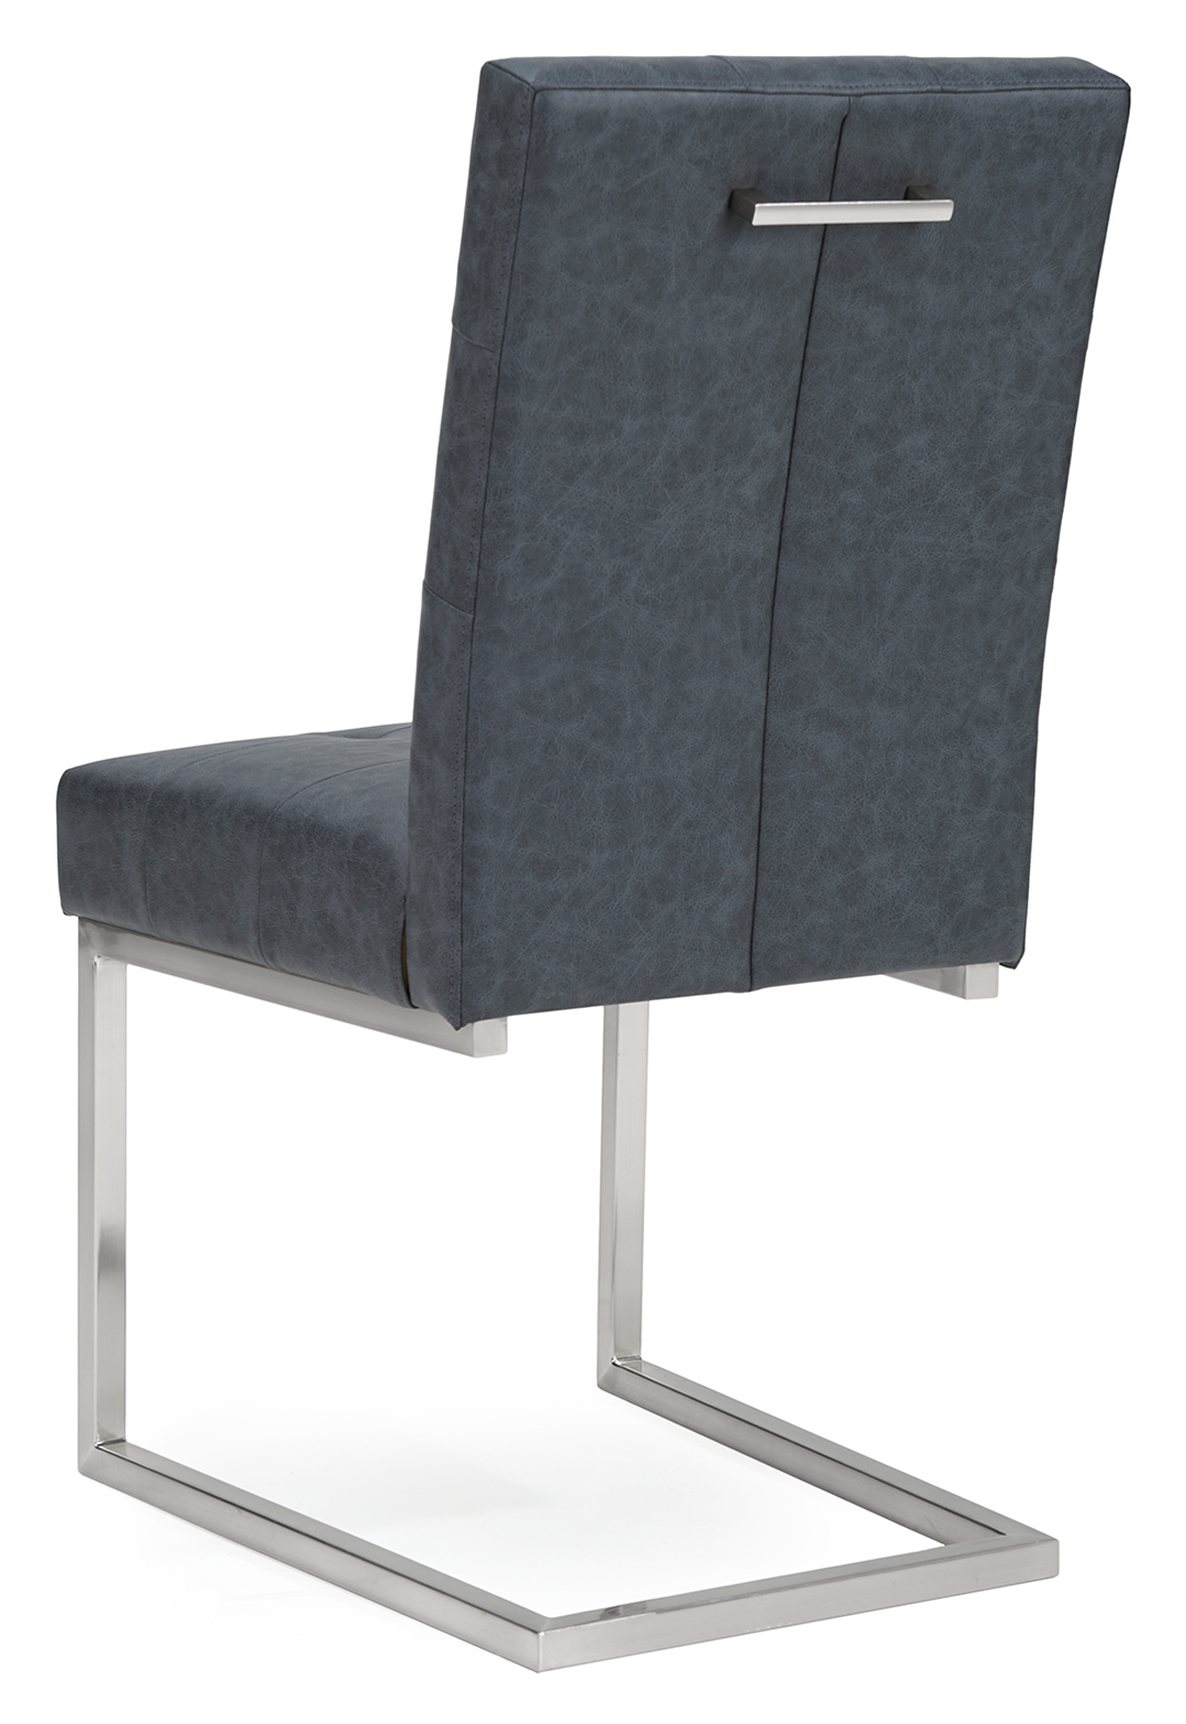 BRINDISI CANTER CHAIR BACK HANDLE DETAIL